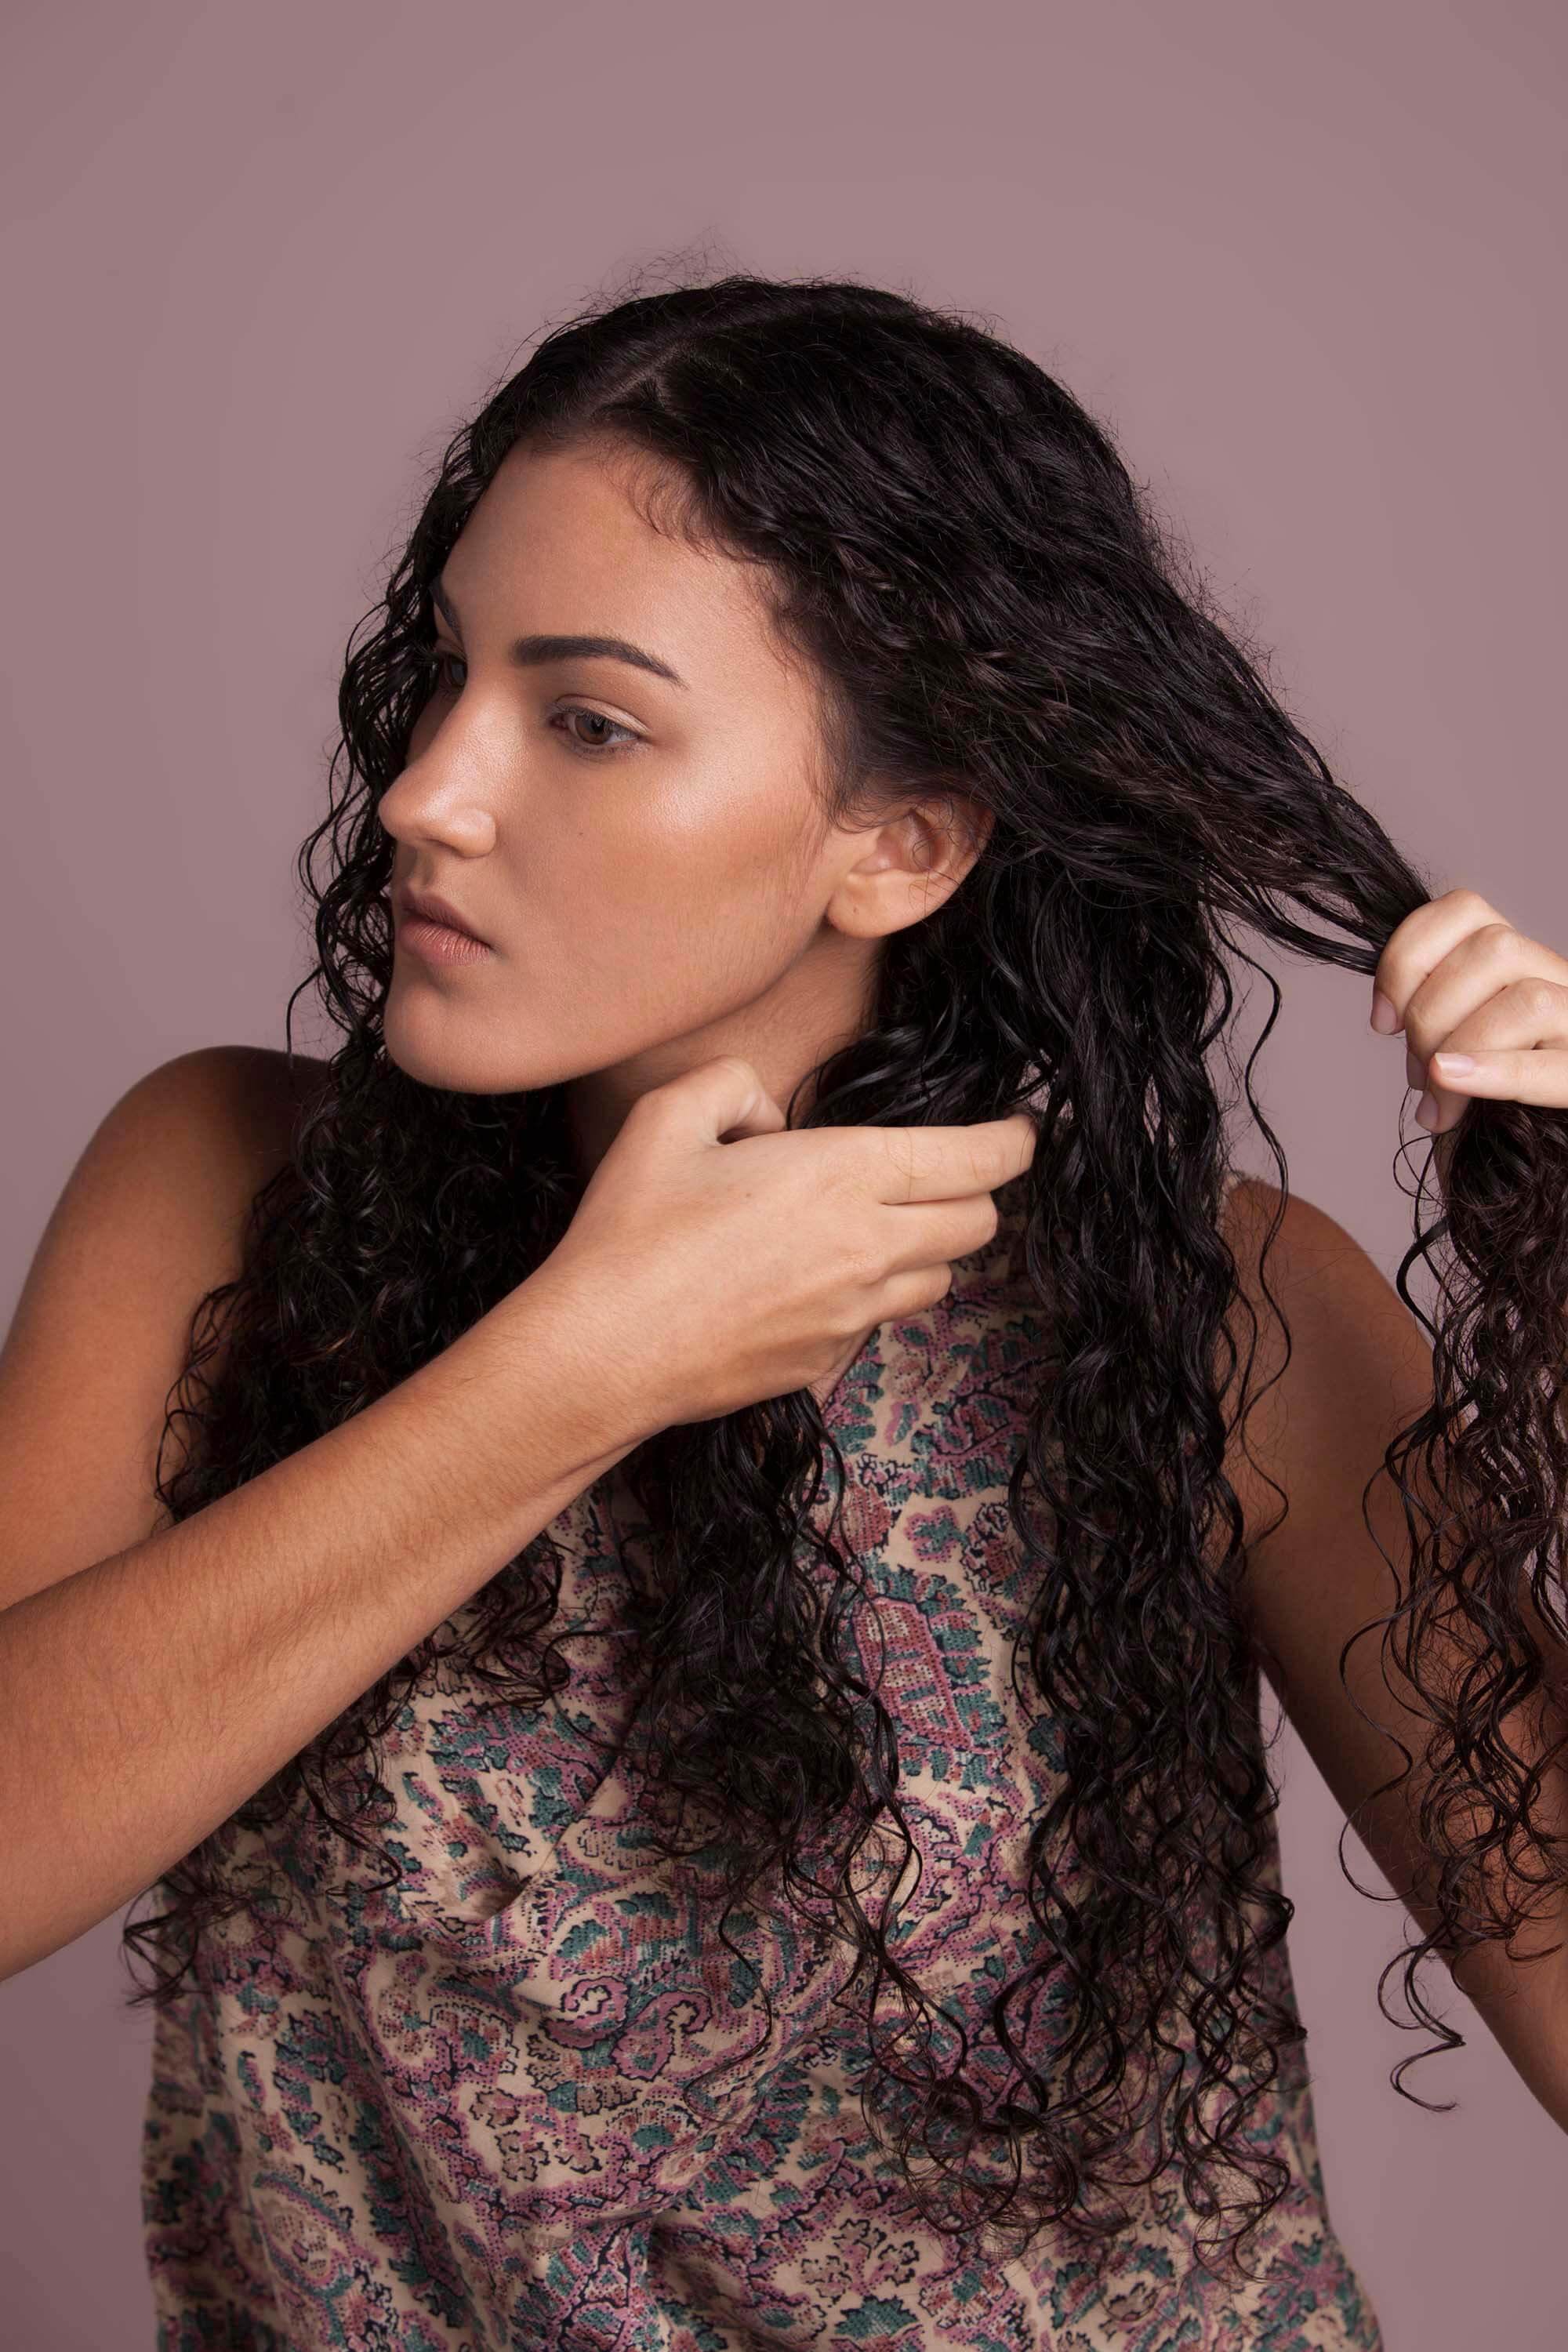 Woman with brunette curly hair sectioning her hair